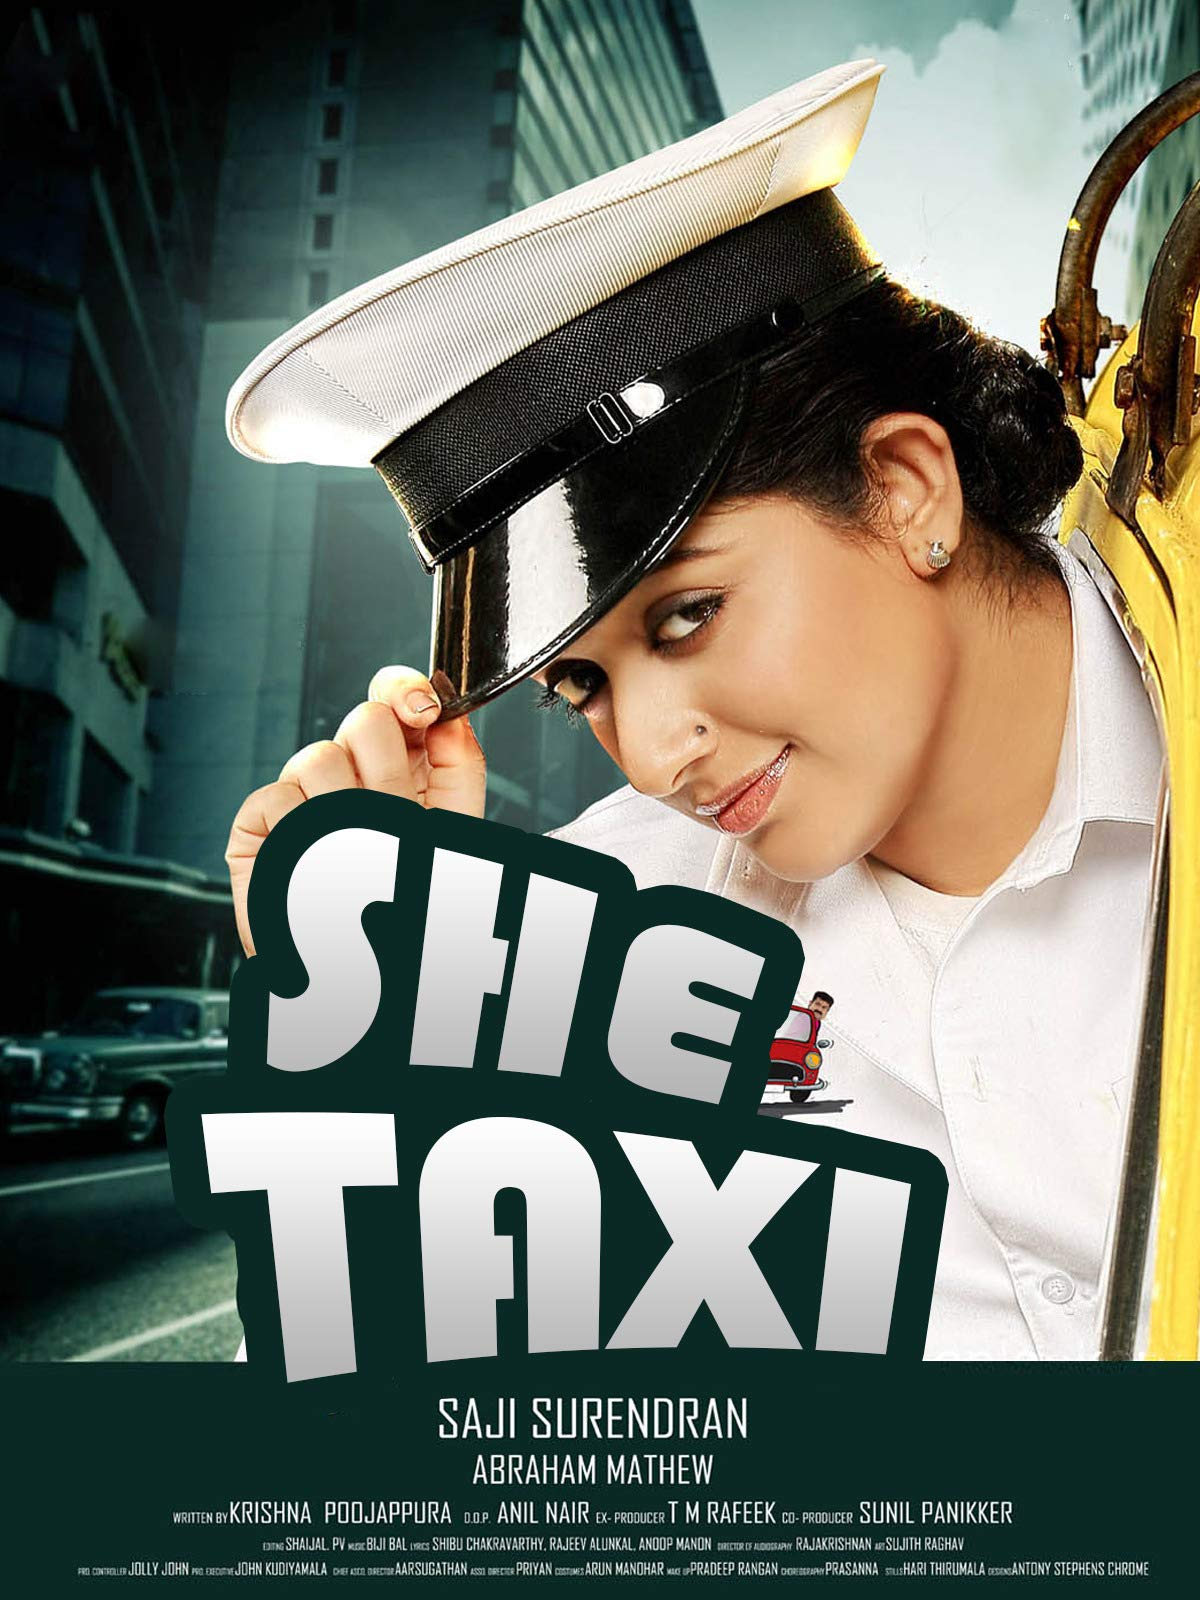 She Taxi on Amazon Prime Video UK